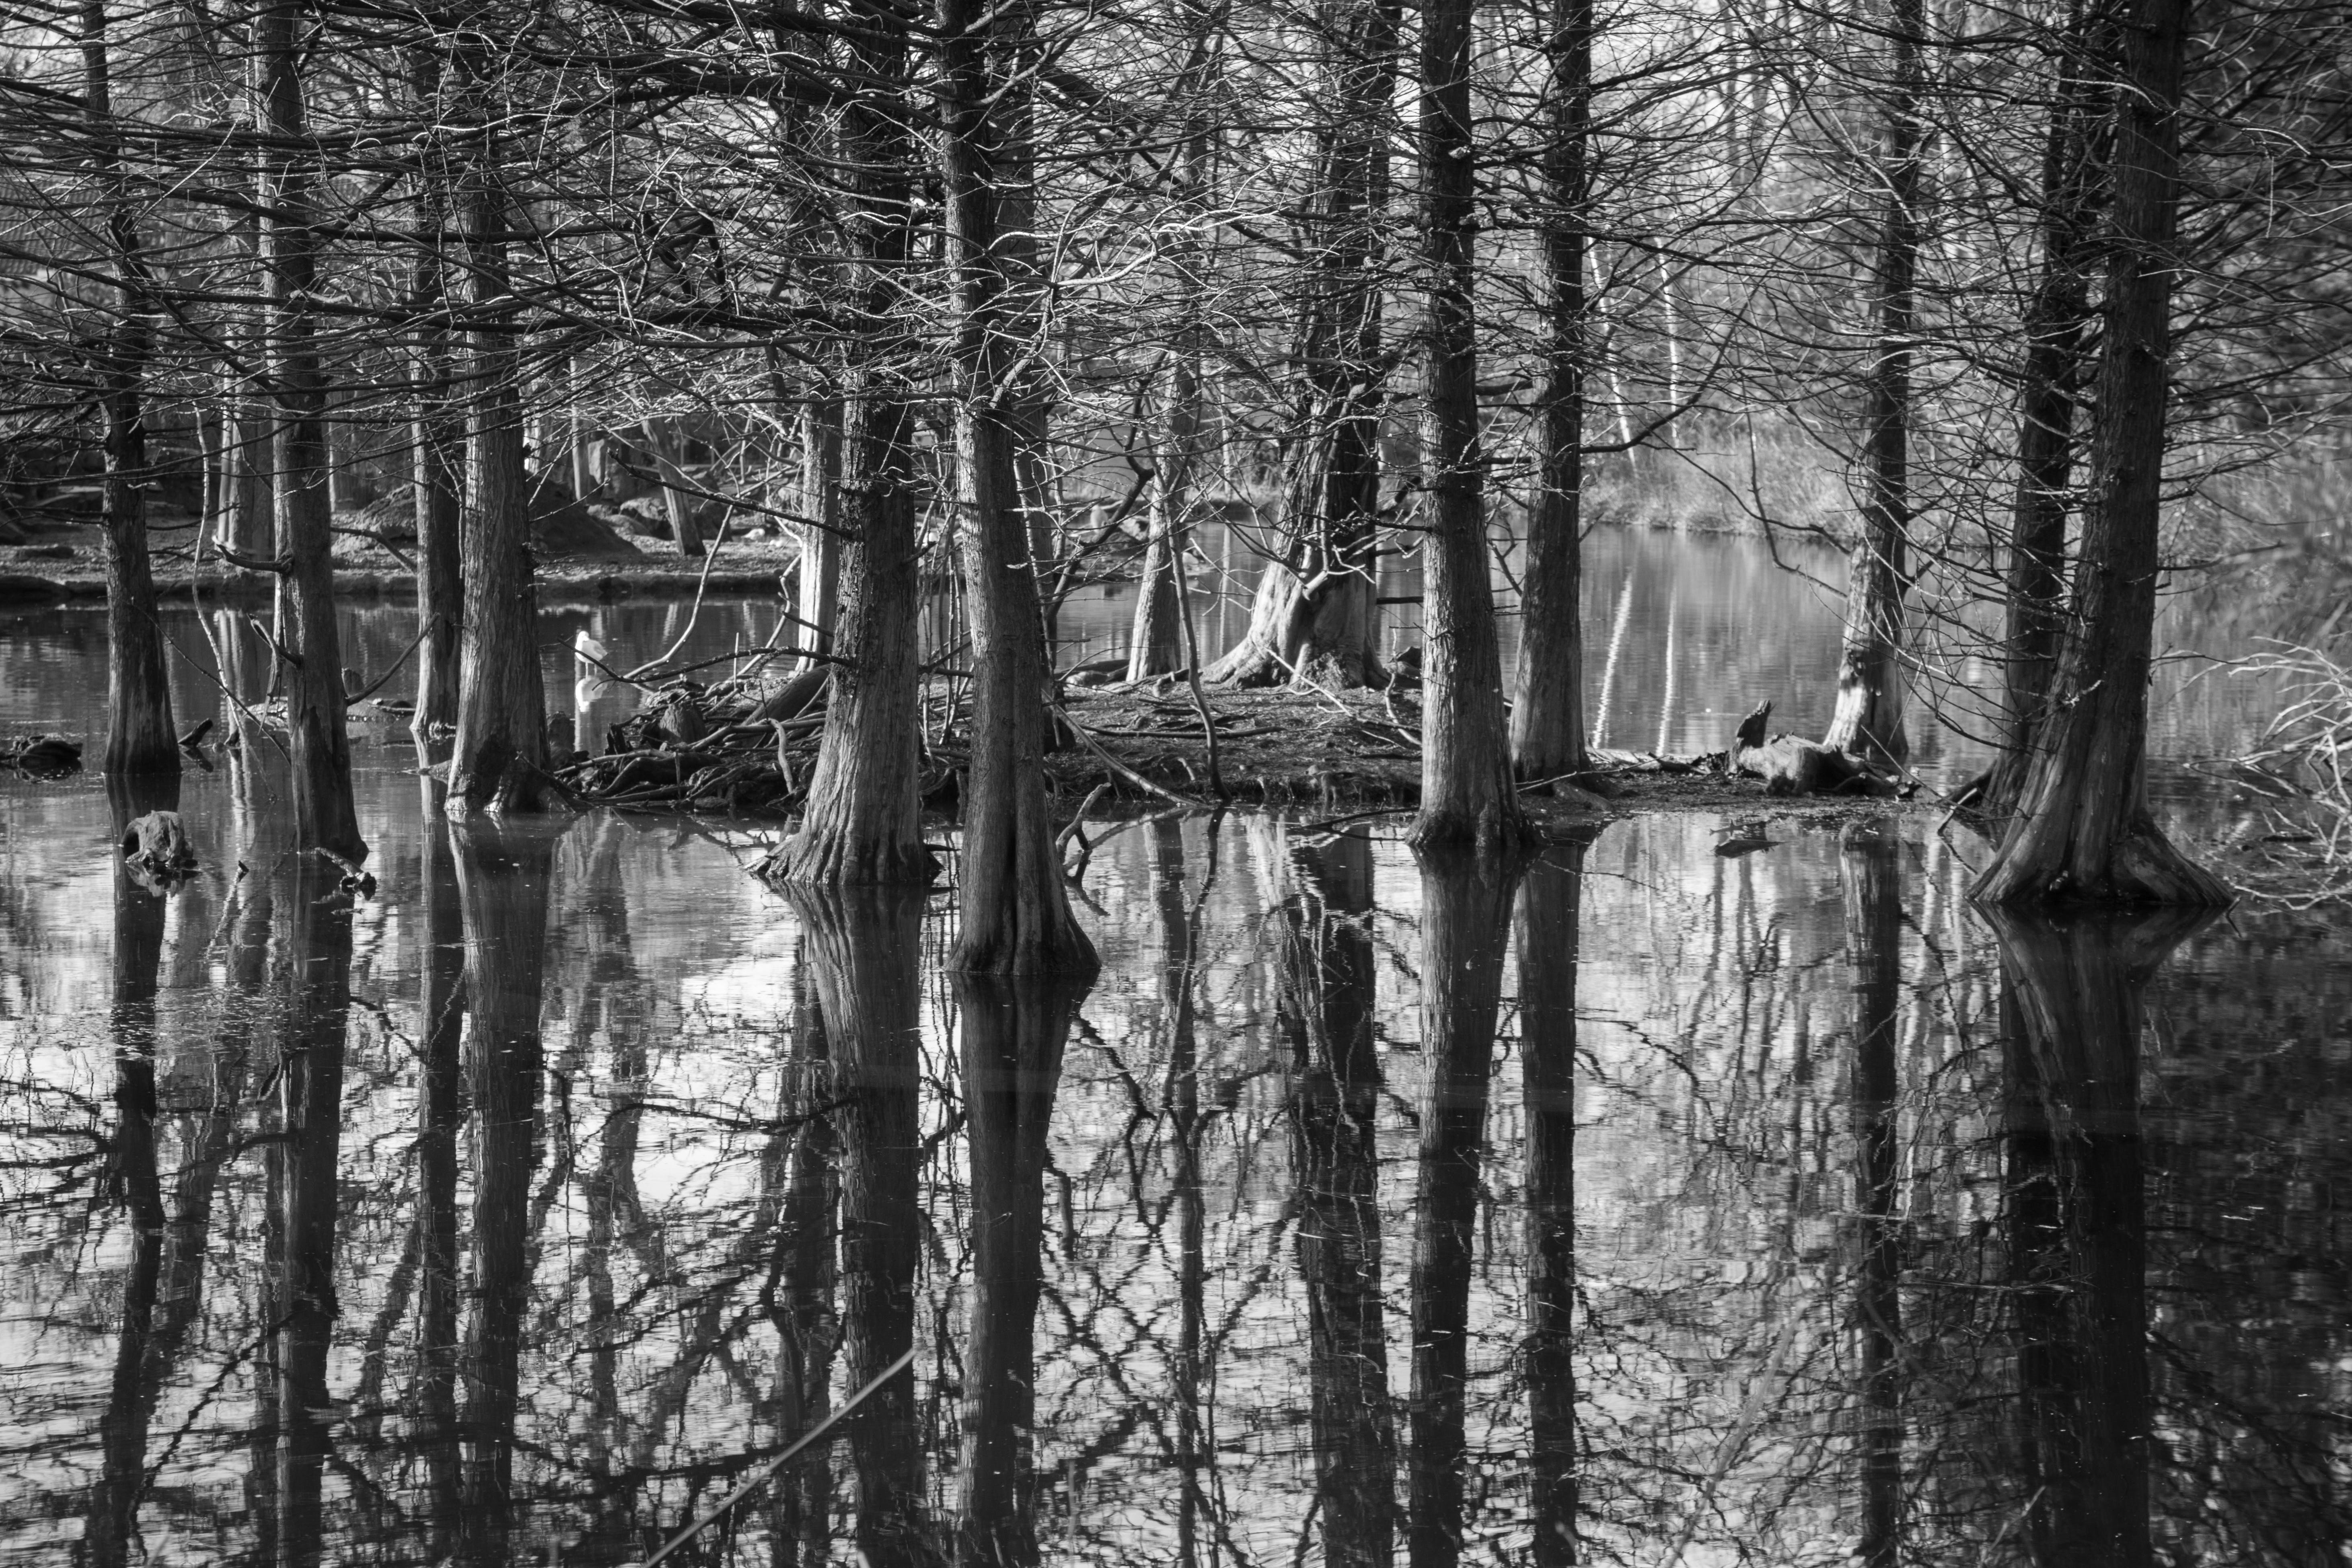 Gray Scale Photography of Trees Surrounded by Body of Water